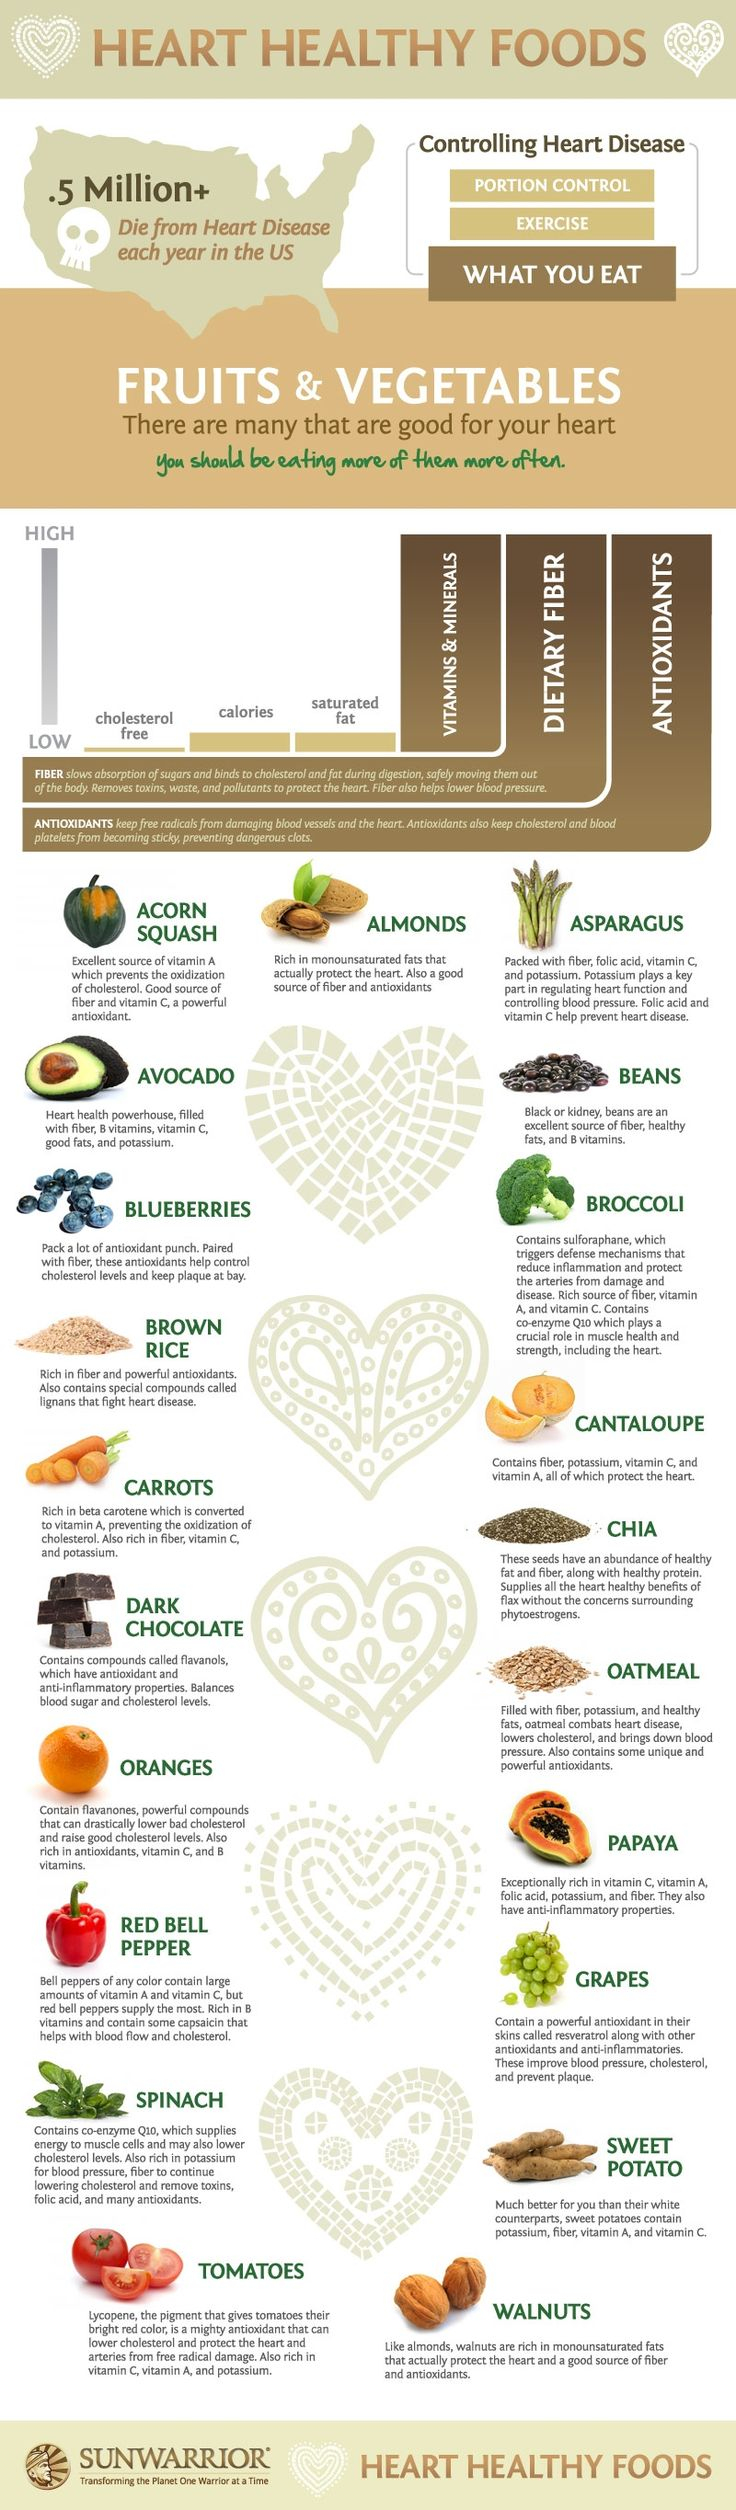 9 best Heart Health images on Pinterest | Health, Healthy eating and ...